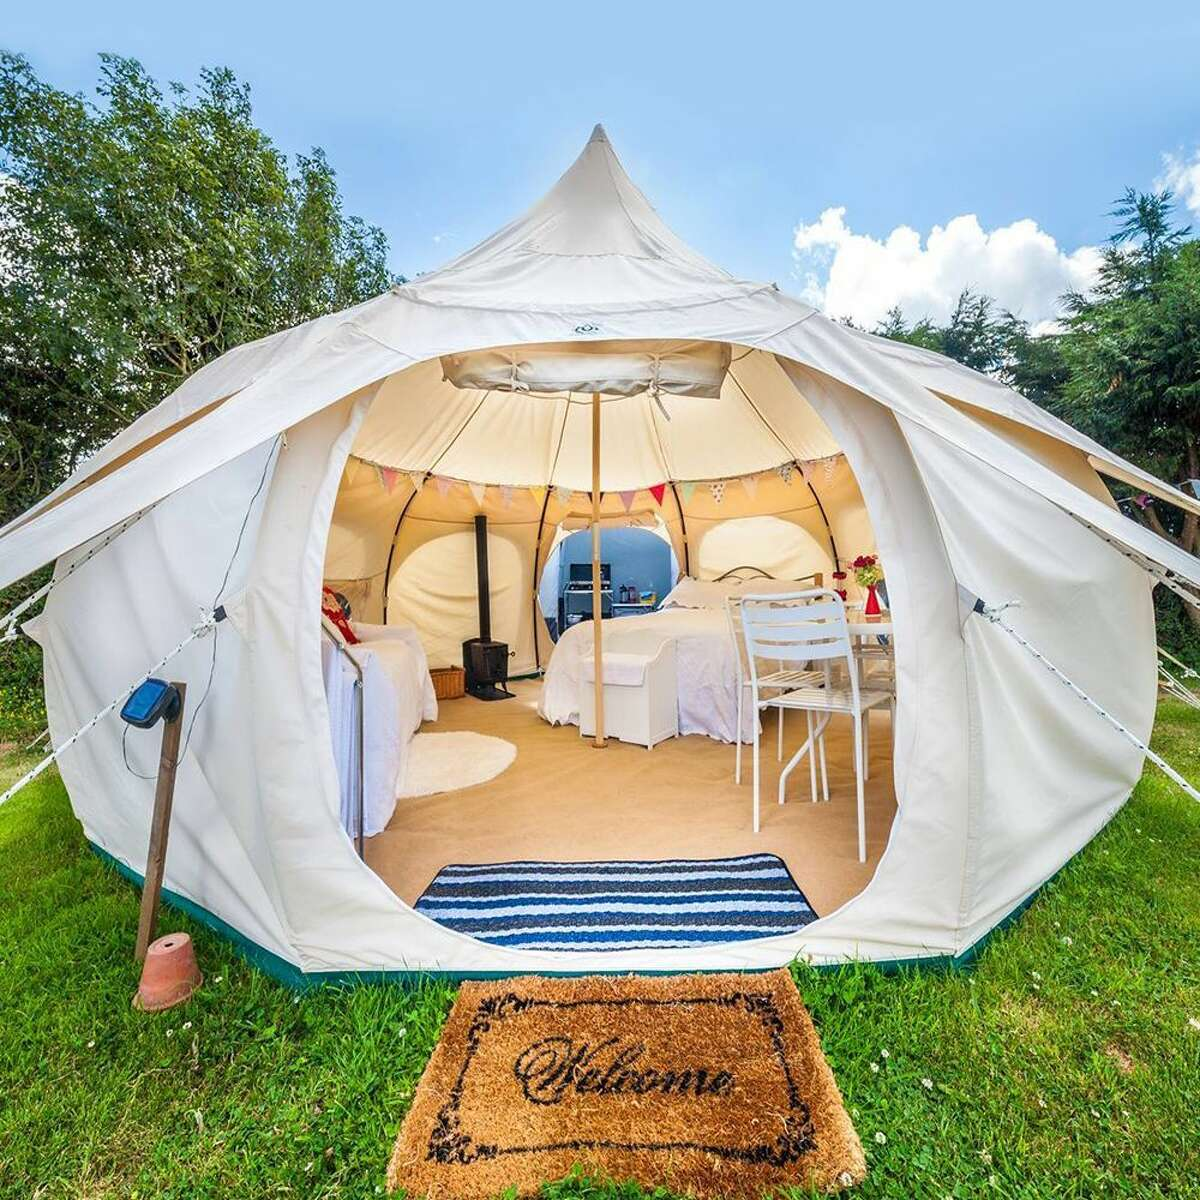 1) Lotus Belle 16-Foot Outback Deluxe Glamping Tent: $2800.00 Shop Now Grab your glamping martini glass and settle in for a while! If this tent seems like something out of a fairytale, that's because it practically is. This 16-by-16-foot bell-shaped tent is big enough to fit six (yes, six!) twin-sized mattresses, or for six people to practice yoga comfortably. This deluxe tent has two mesh windows and two roof vents to maximize airflow, an oversized zip-up front door that is wide enough for a queen-sized bed to fit through, and plenty of exterior tie-downs to keep things secure if the wind picks up. This Lotus Belle is the definition of a glamping tent, with so much comfort that you might never want to go home! More: These Glamping Destinations Are What Dreams Are Made Of